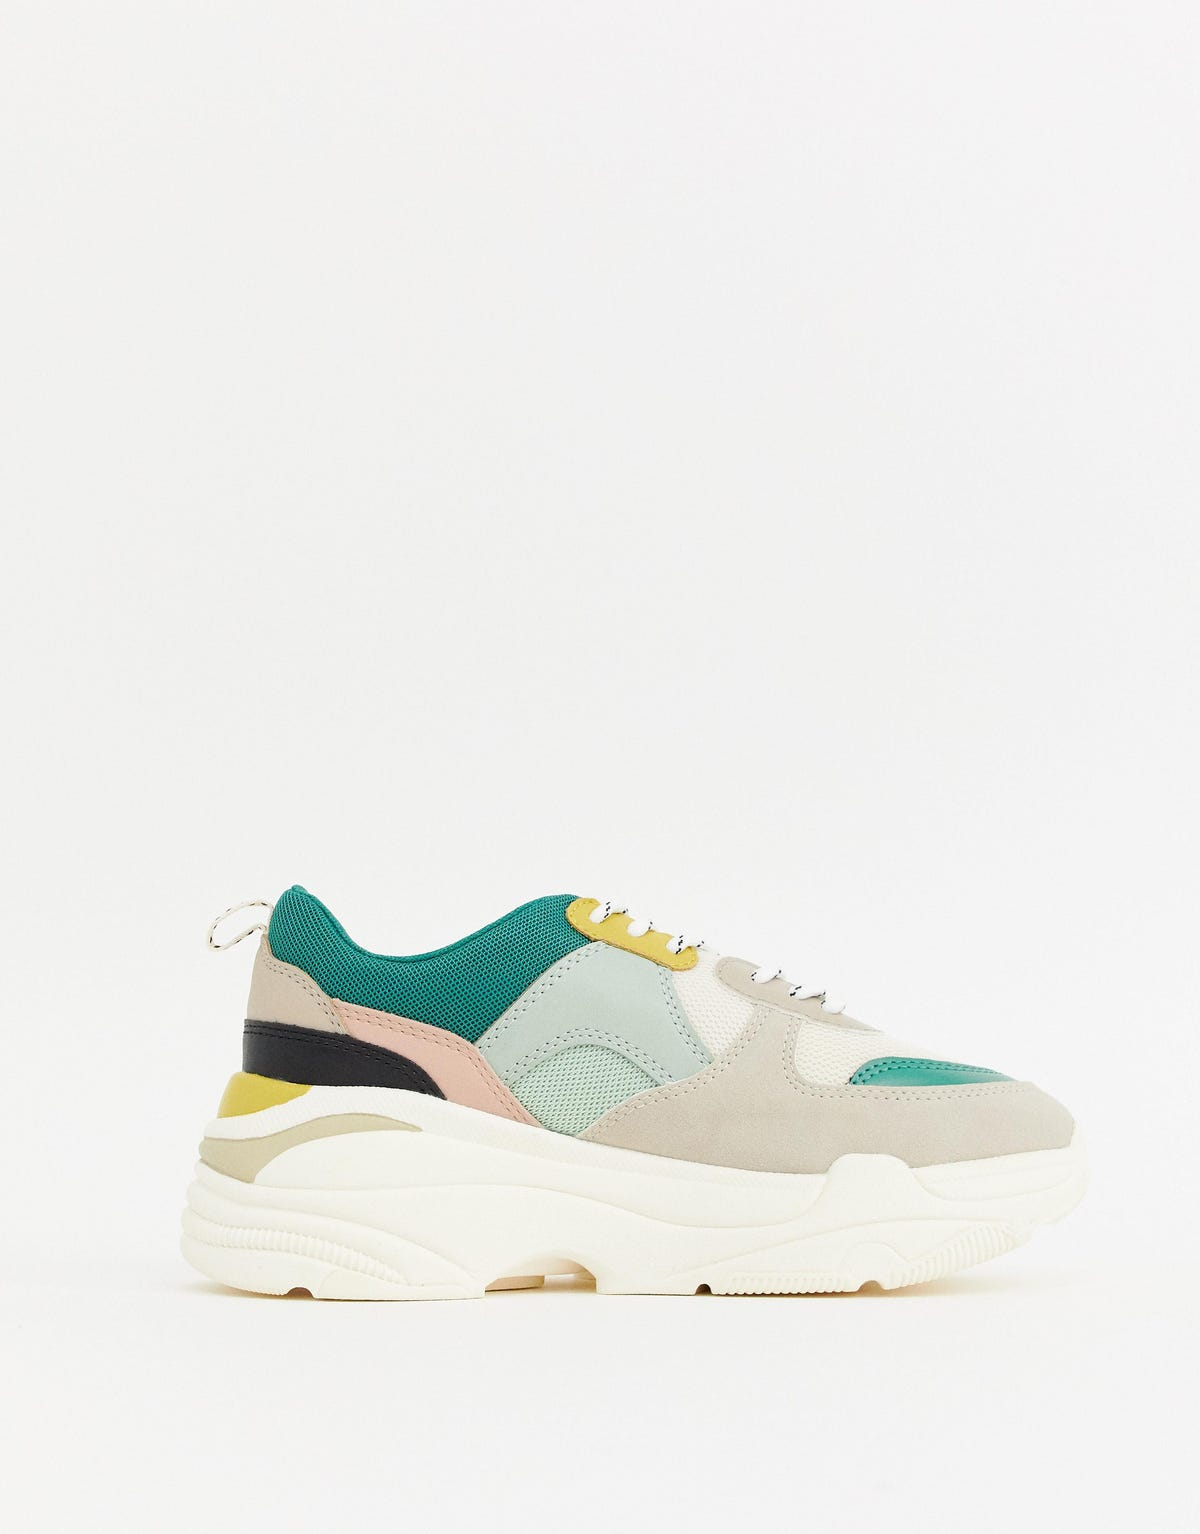 494de141be Coolest Ugly Dad Sneakers For Women - 2019 Trends